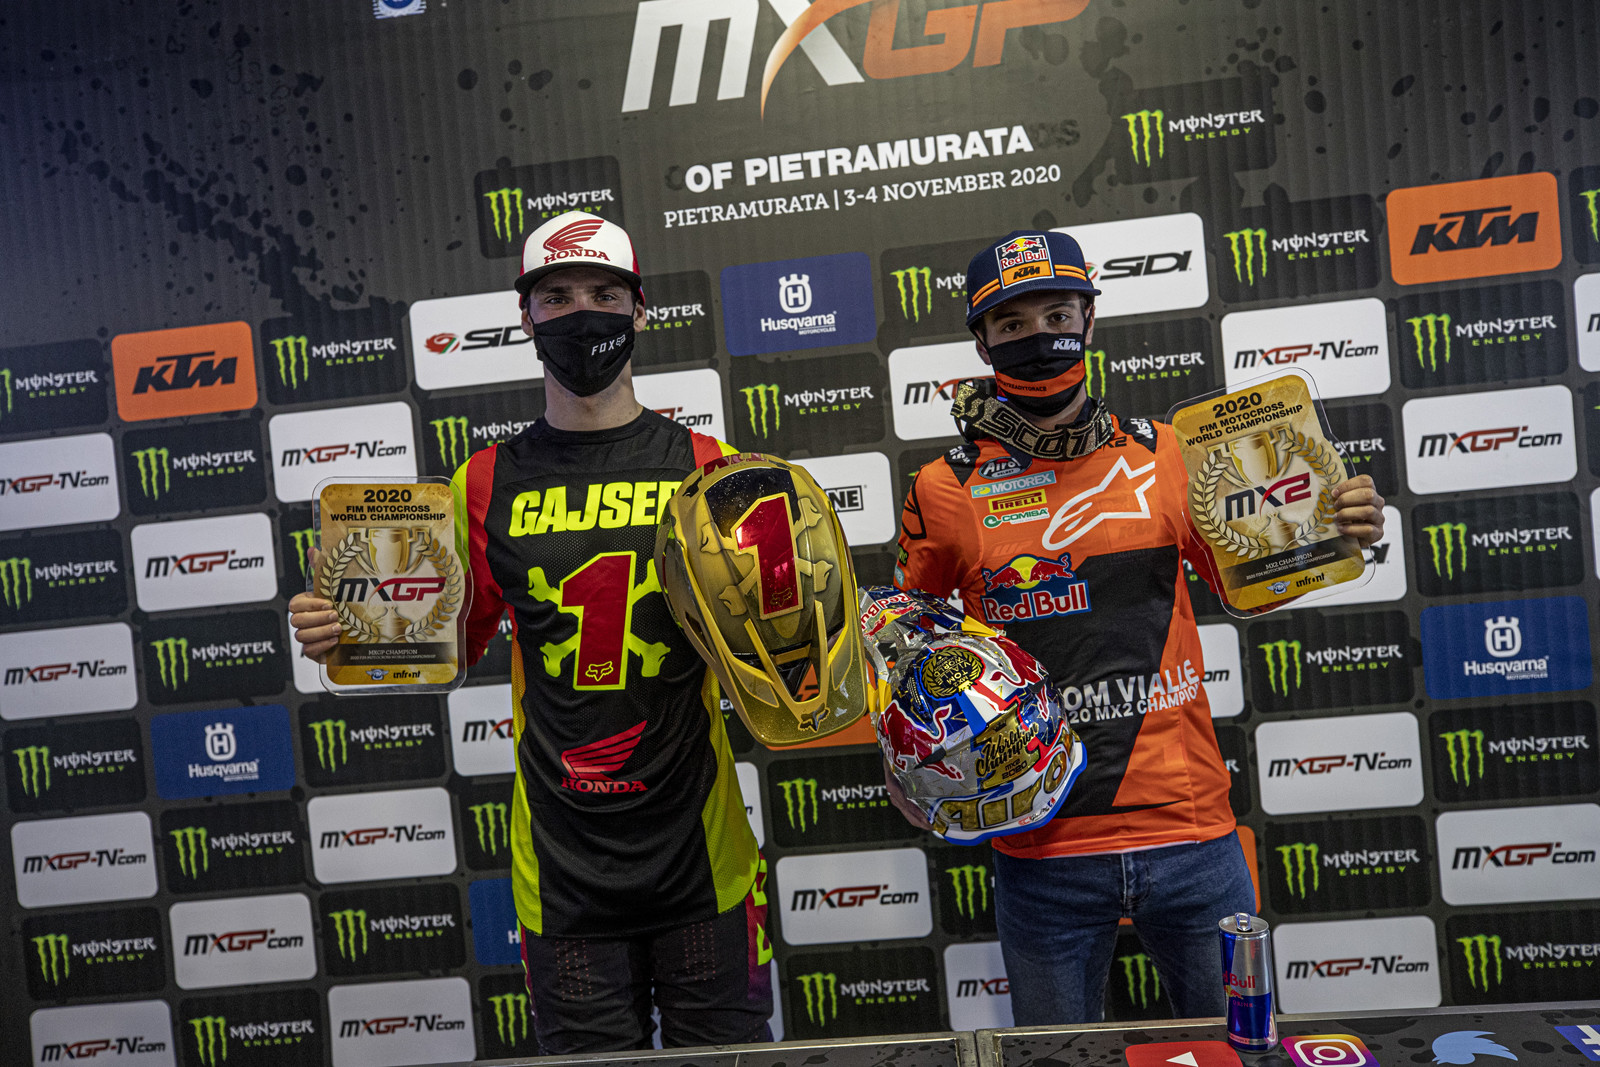 Even though there is one more round, both the MXGP and MX2 championships where wrapped up by Tim Gajser and Tom Vialle respectively.